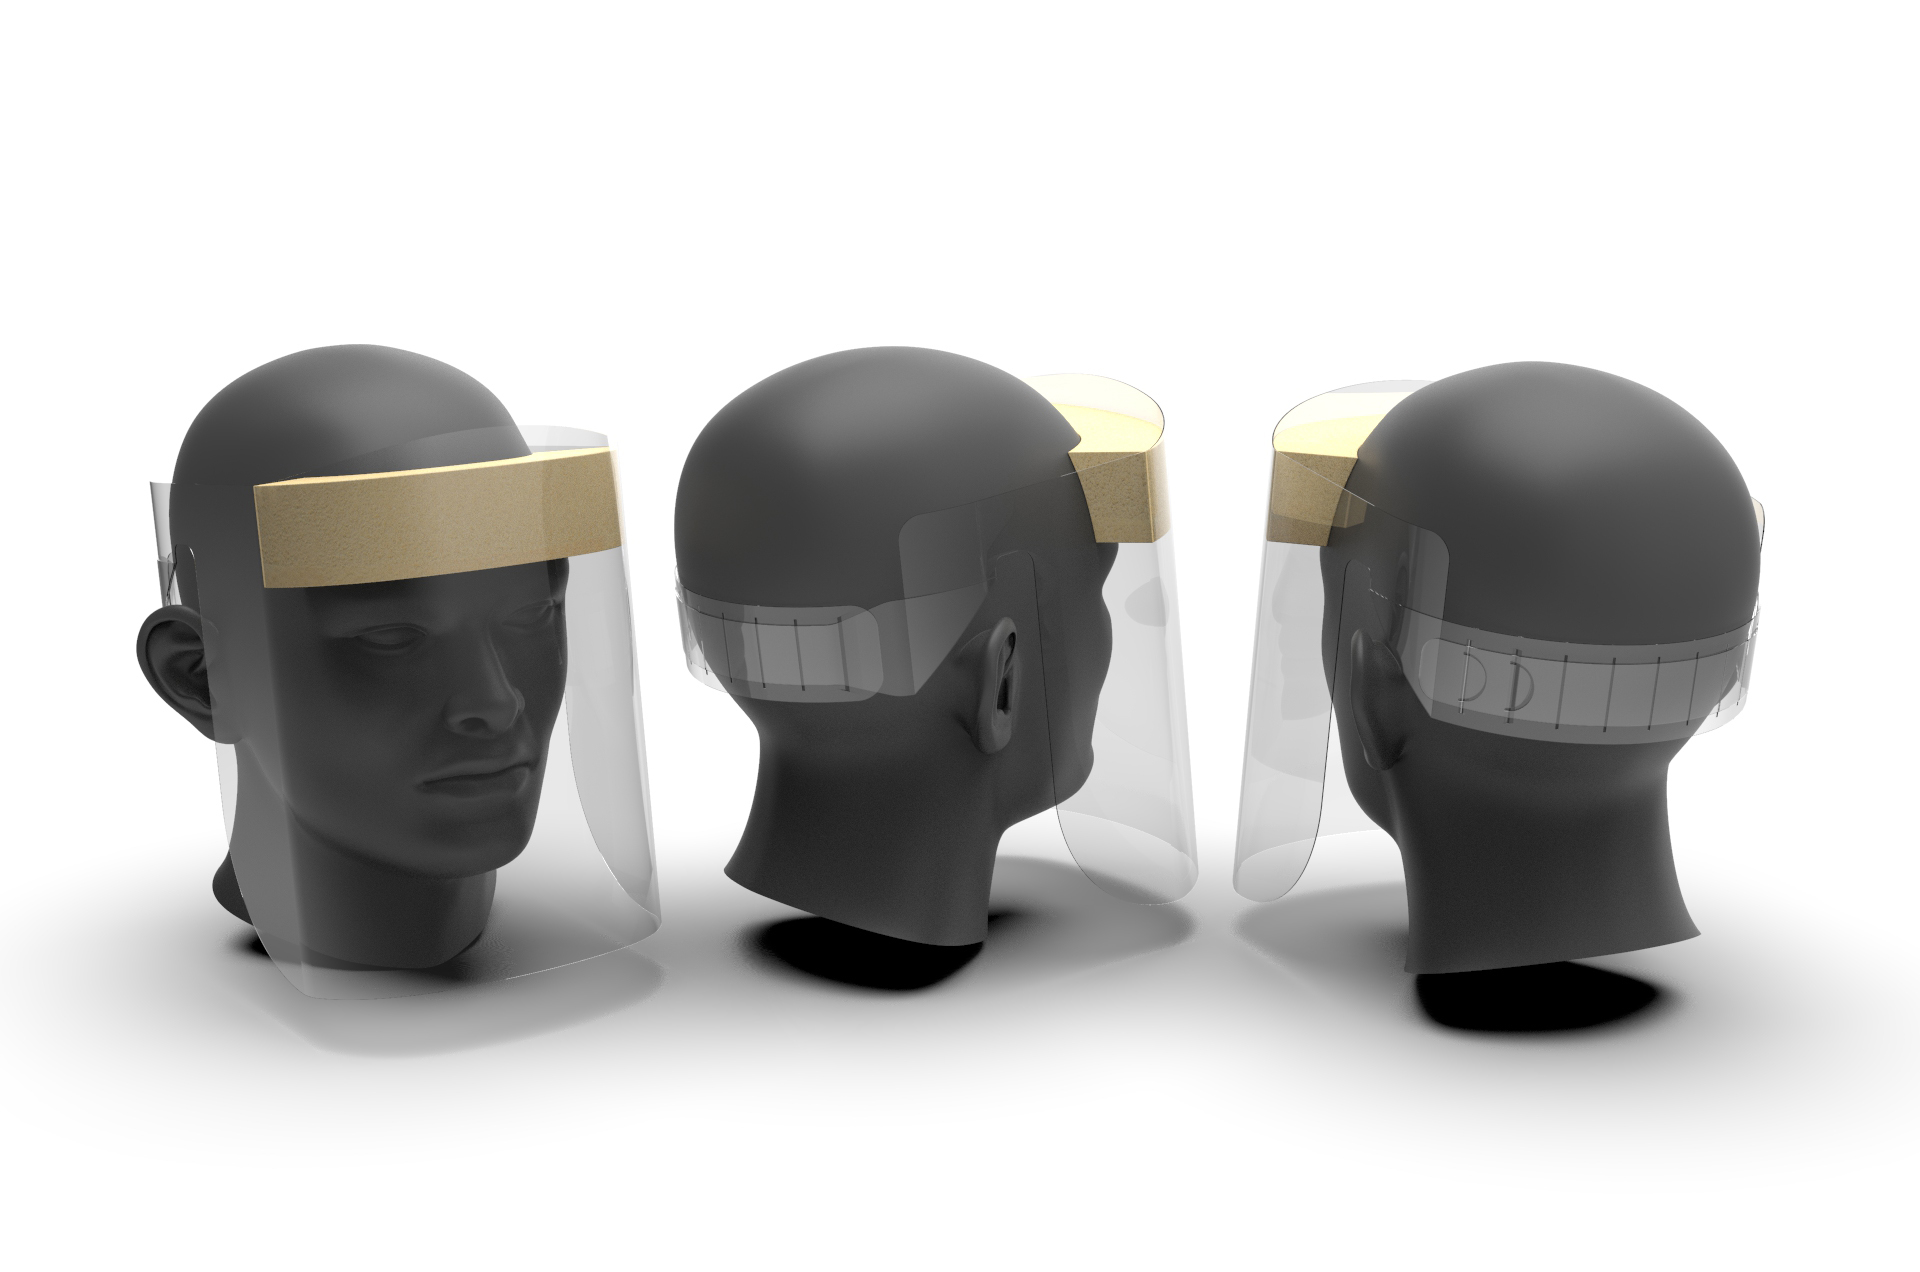 The Role of Face Shields or Visors in Responding to COVID-19